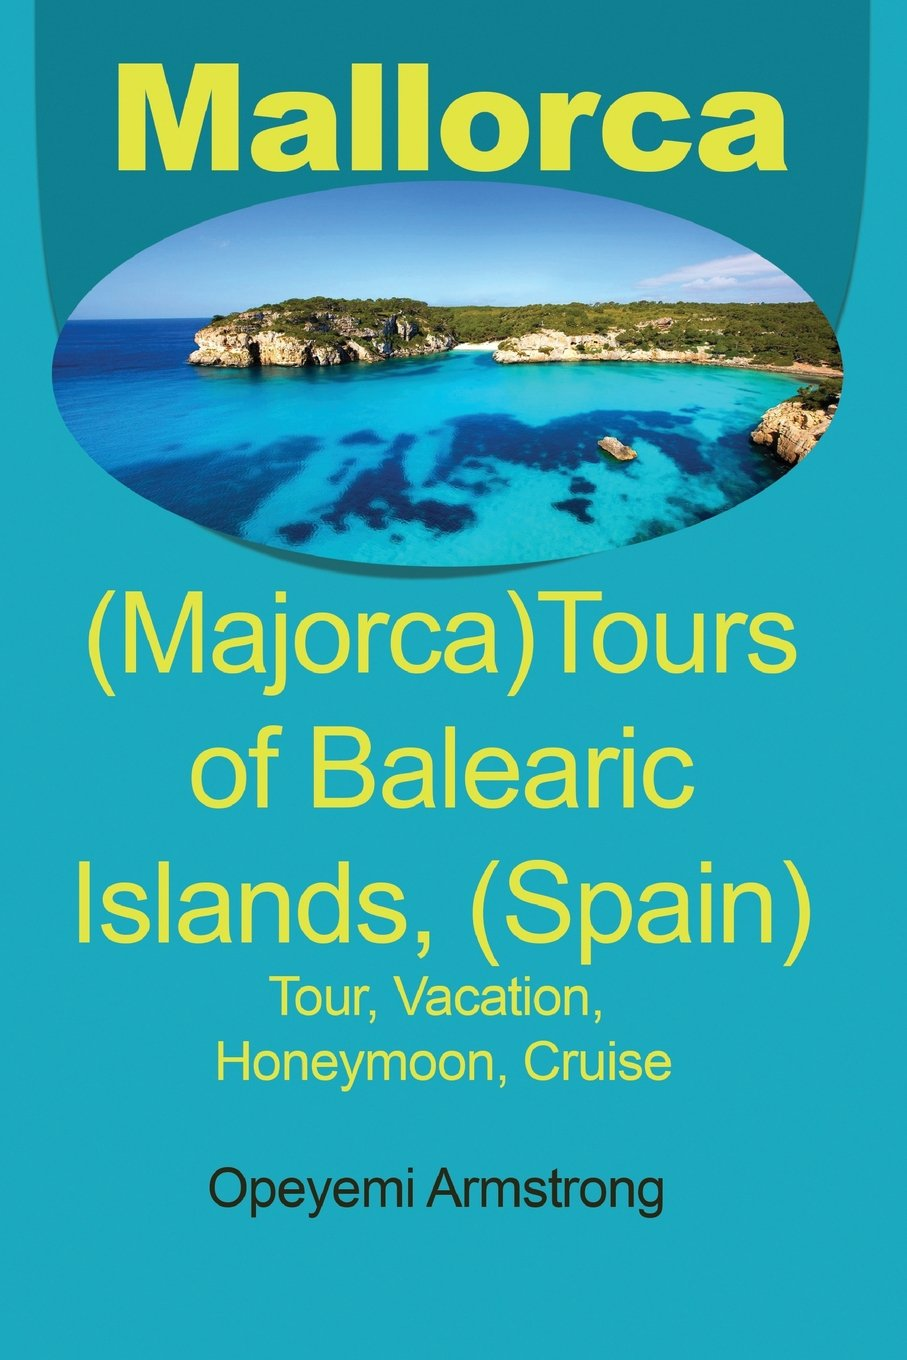 Mallorca (Majorca)Tours of Balearic Islands, (Spain): Tour, Vacation, Honeymoon, Cruise